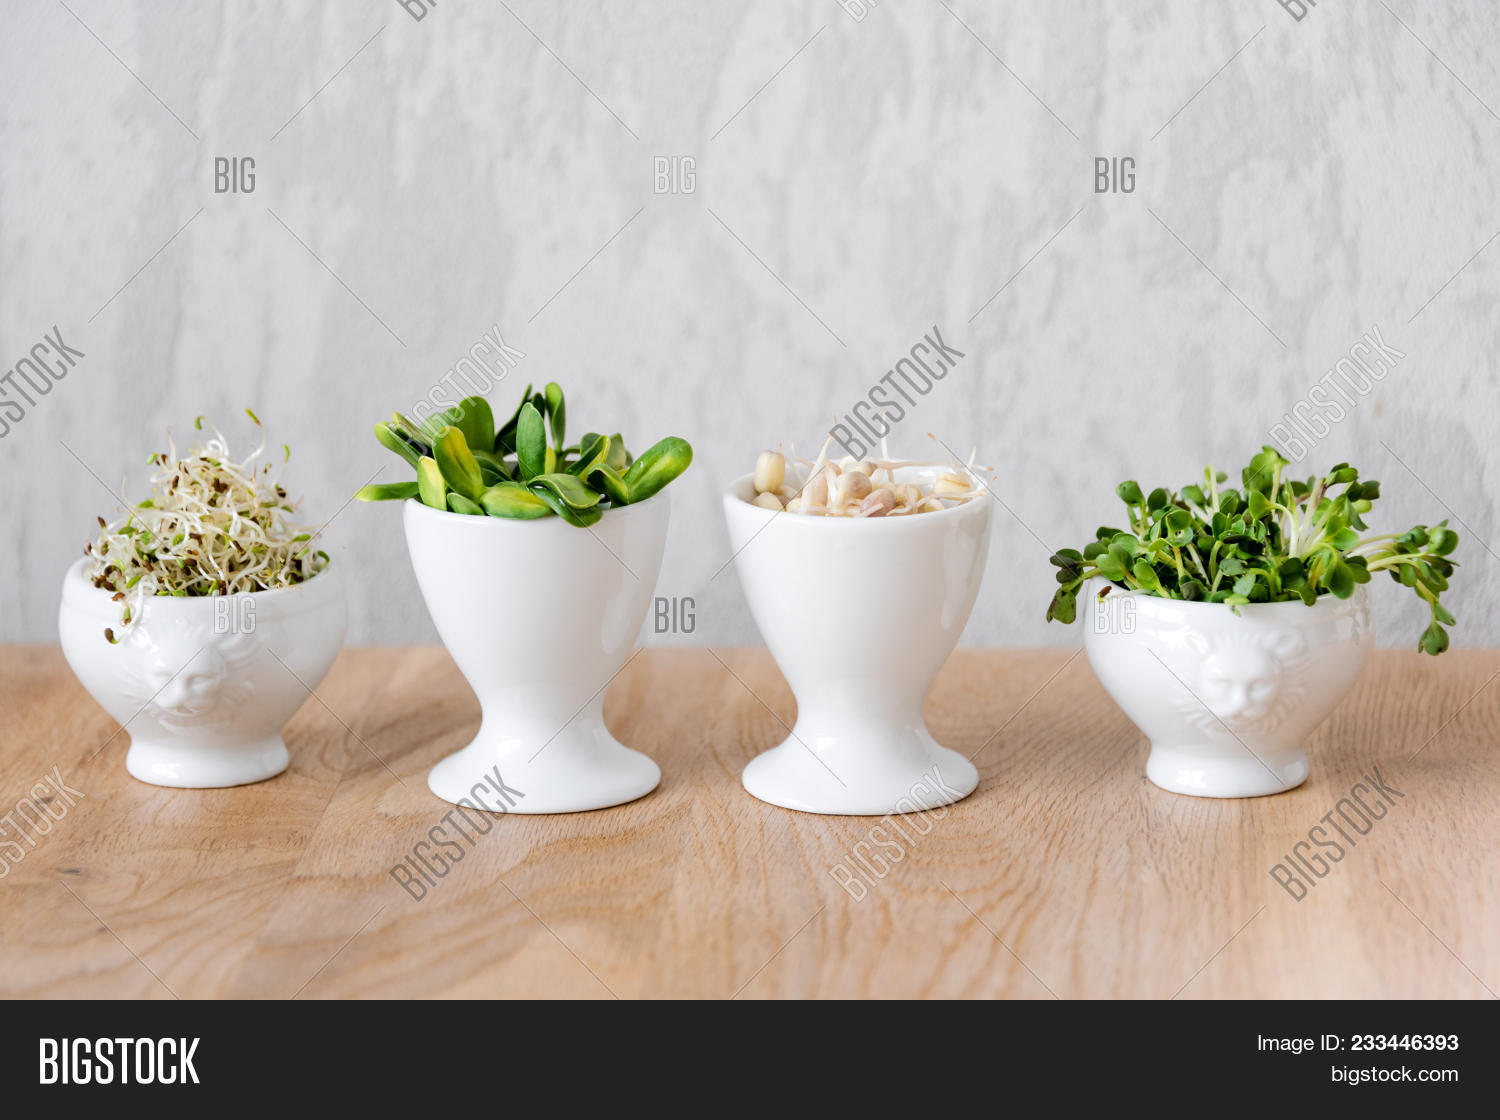 Different Types Of Micro Greens In White Bowls For Sauces On